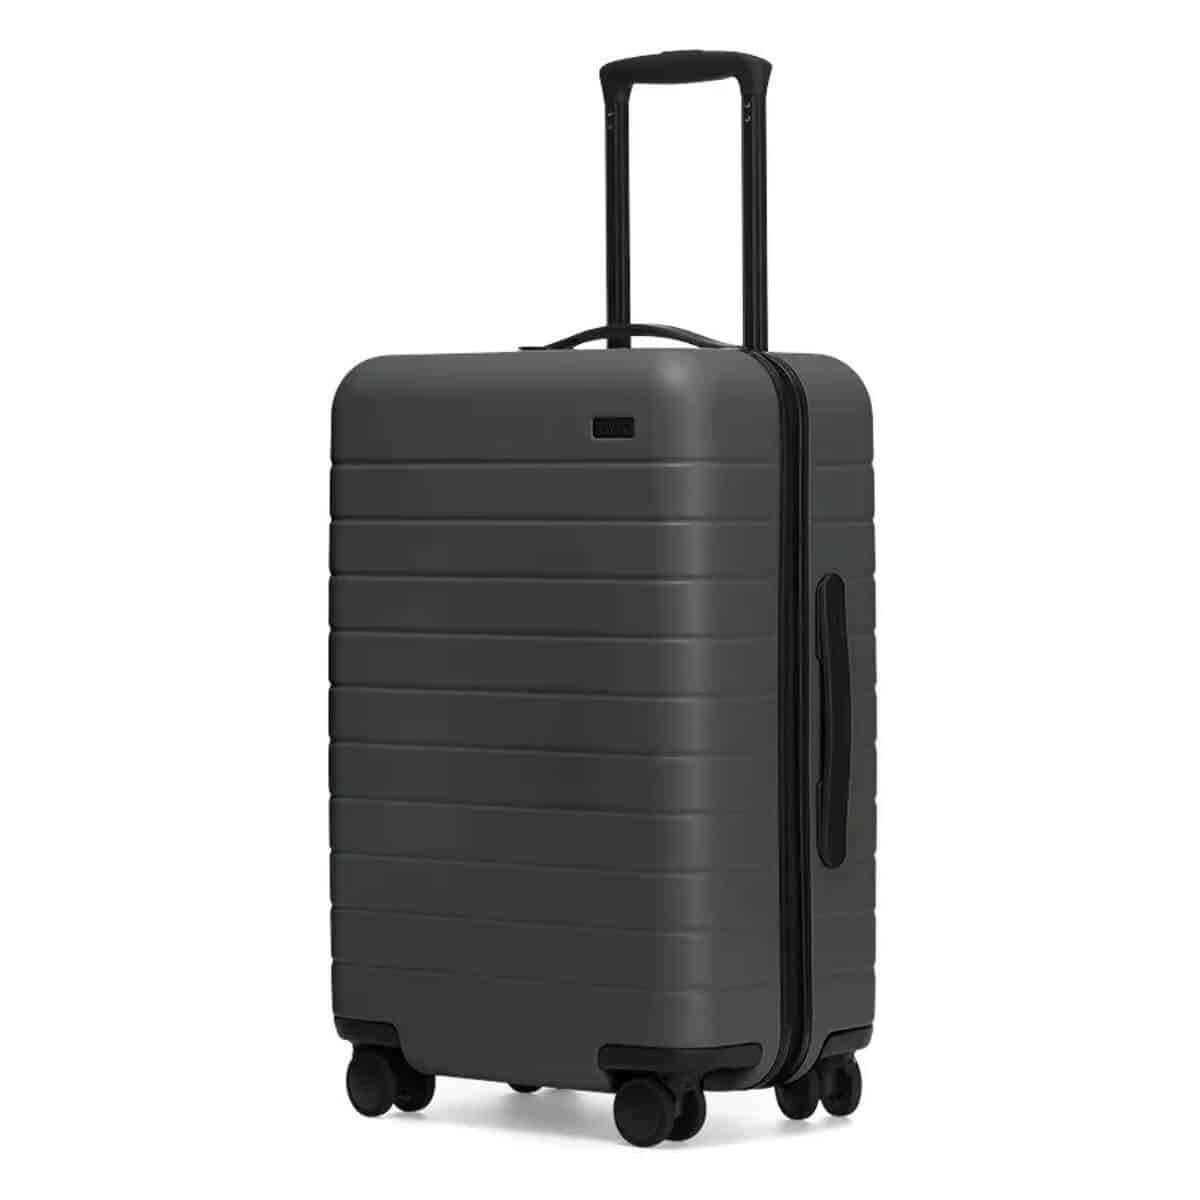 Dark grey hard-shell carry-on luggage by Away.